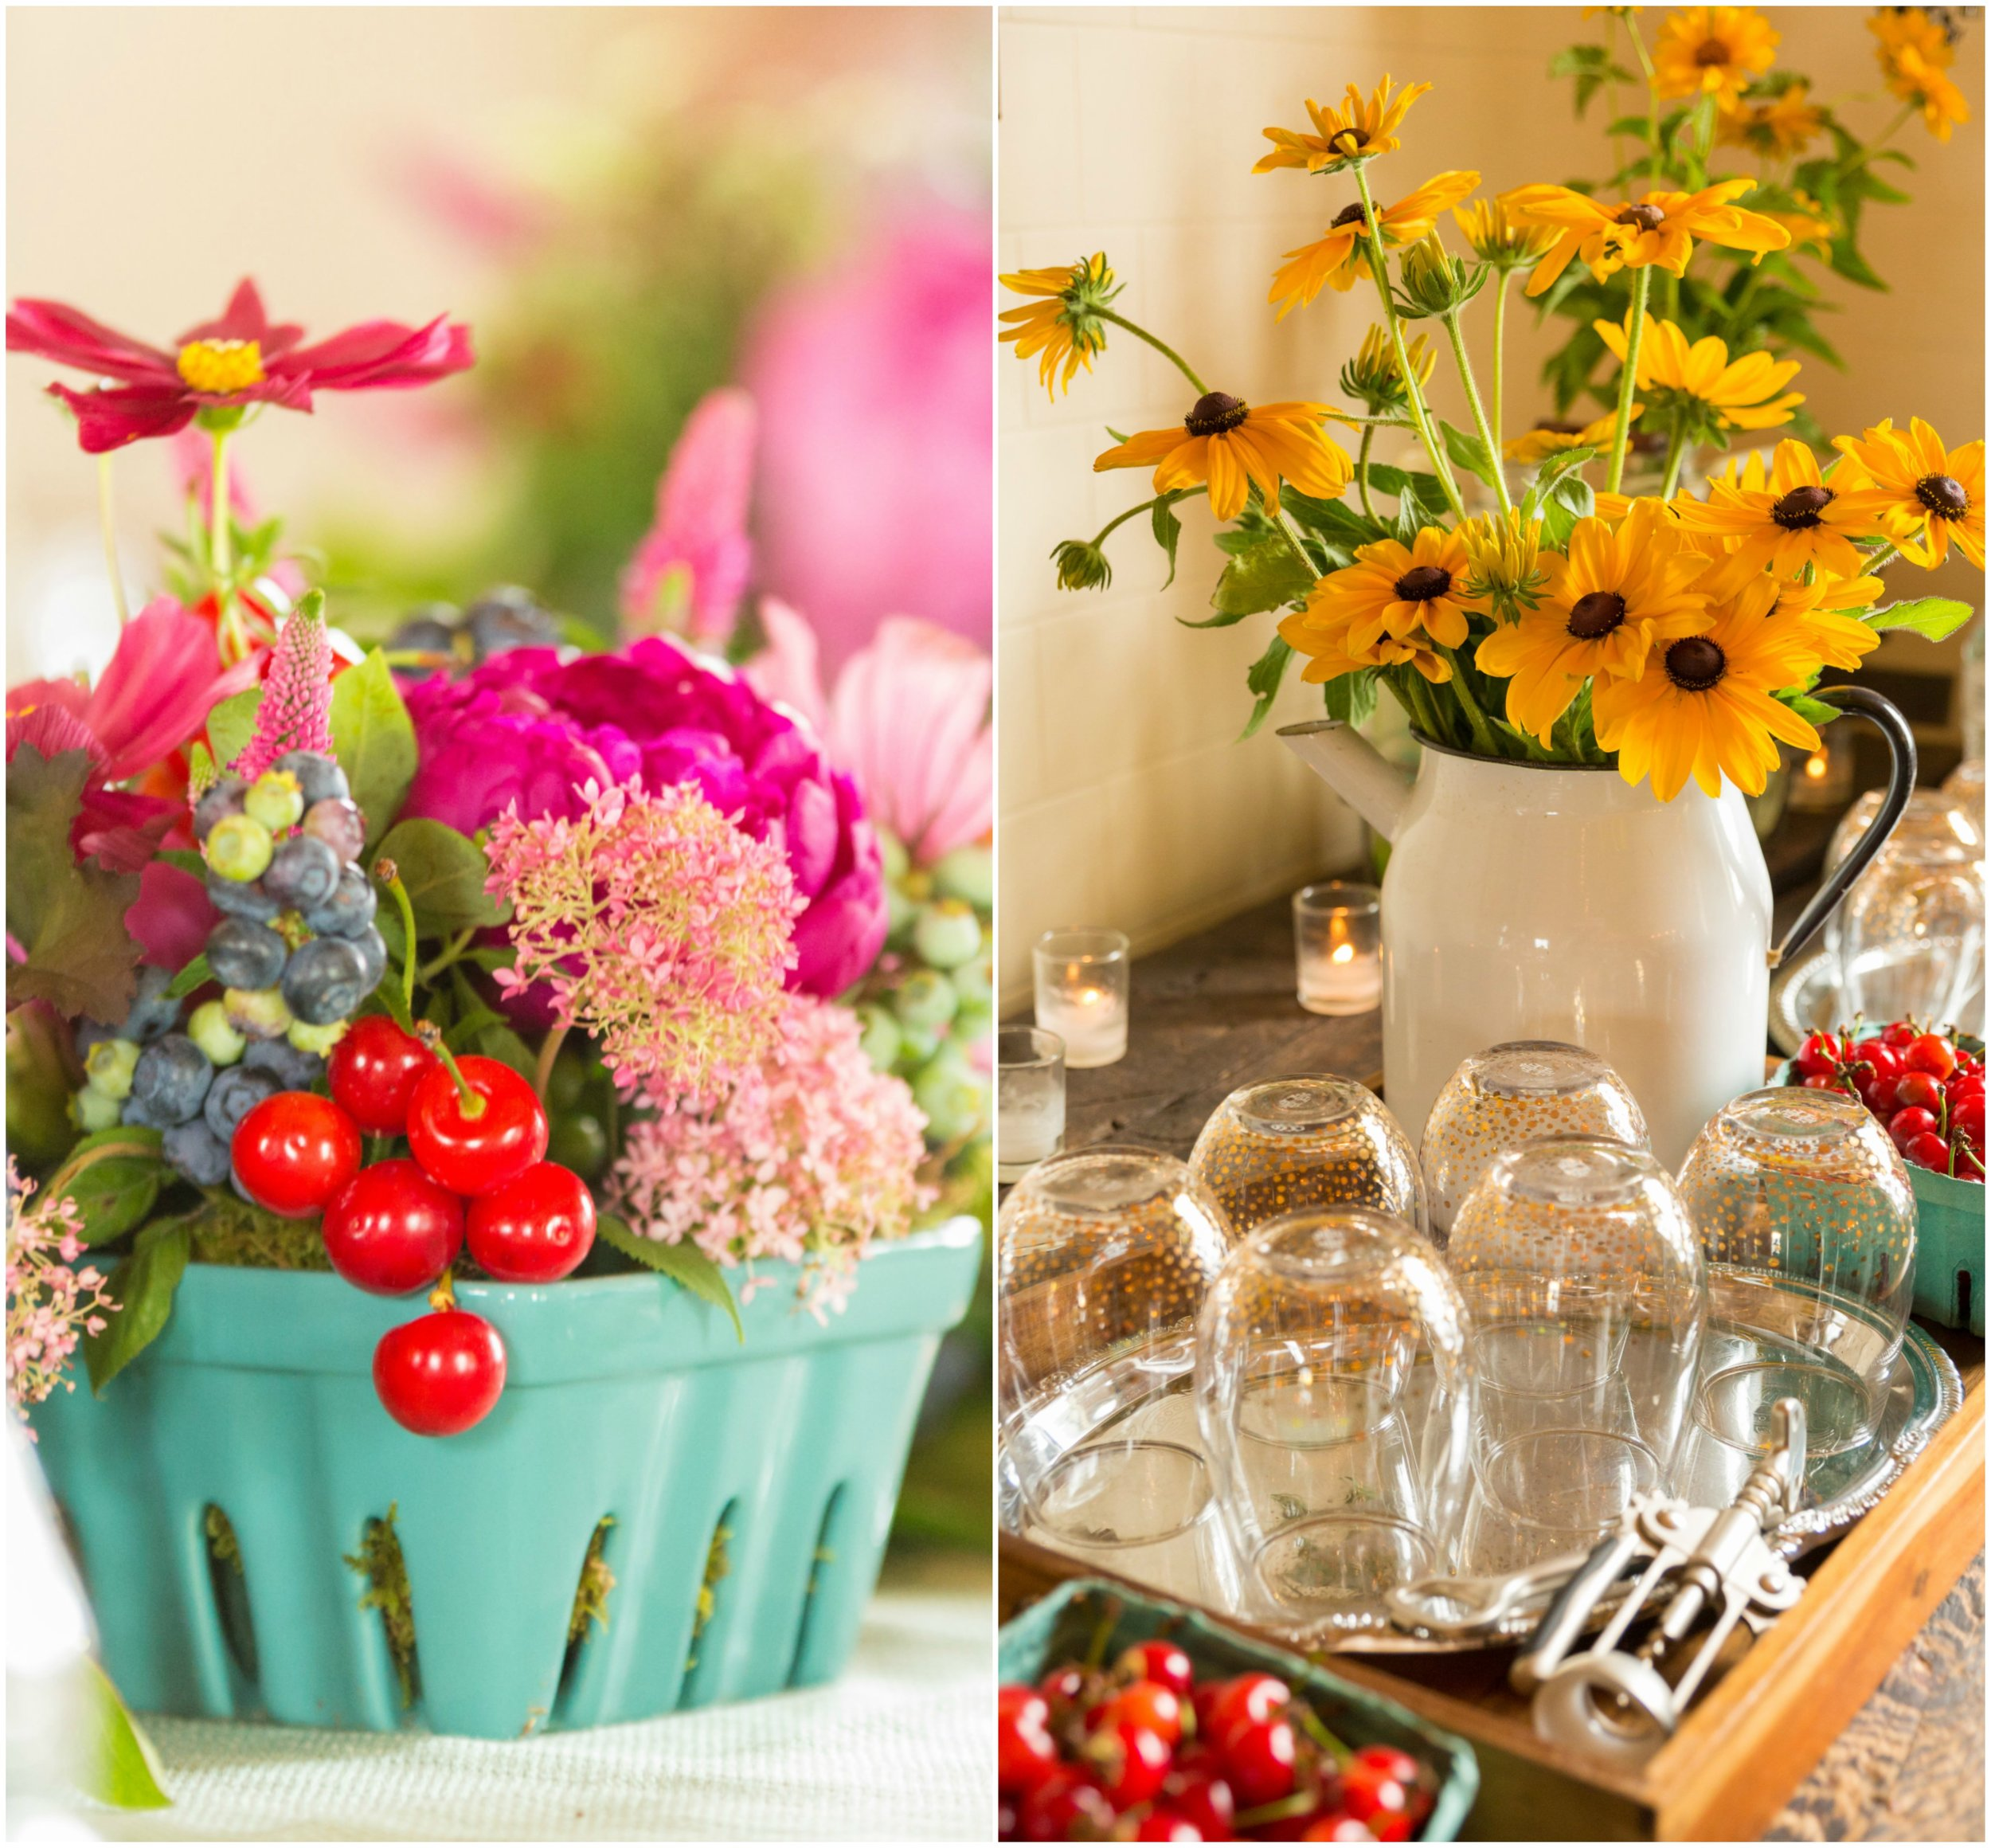 Farm to Table themed decor at A Milkhouse Party